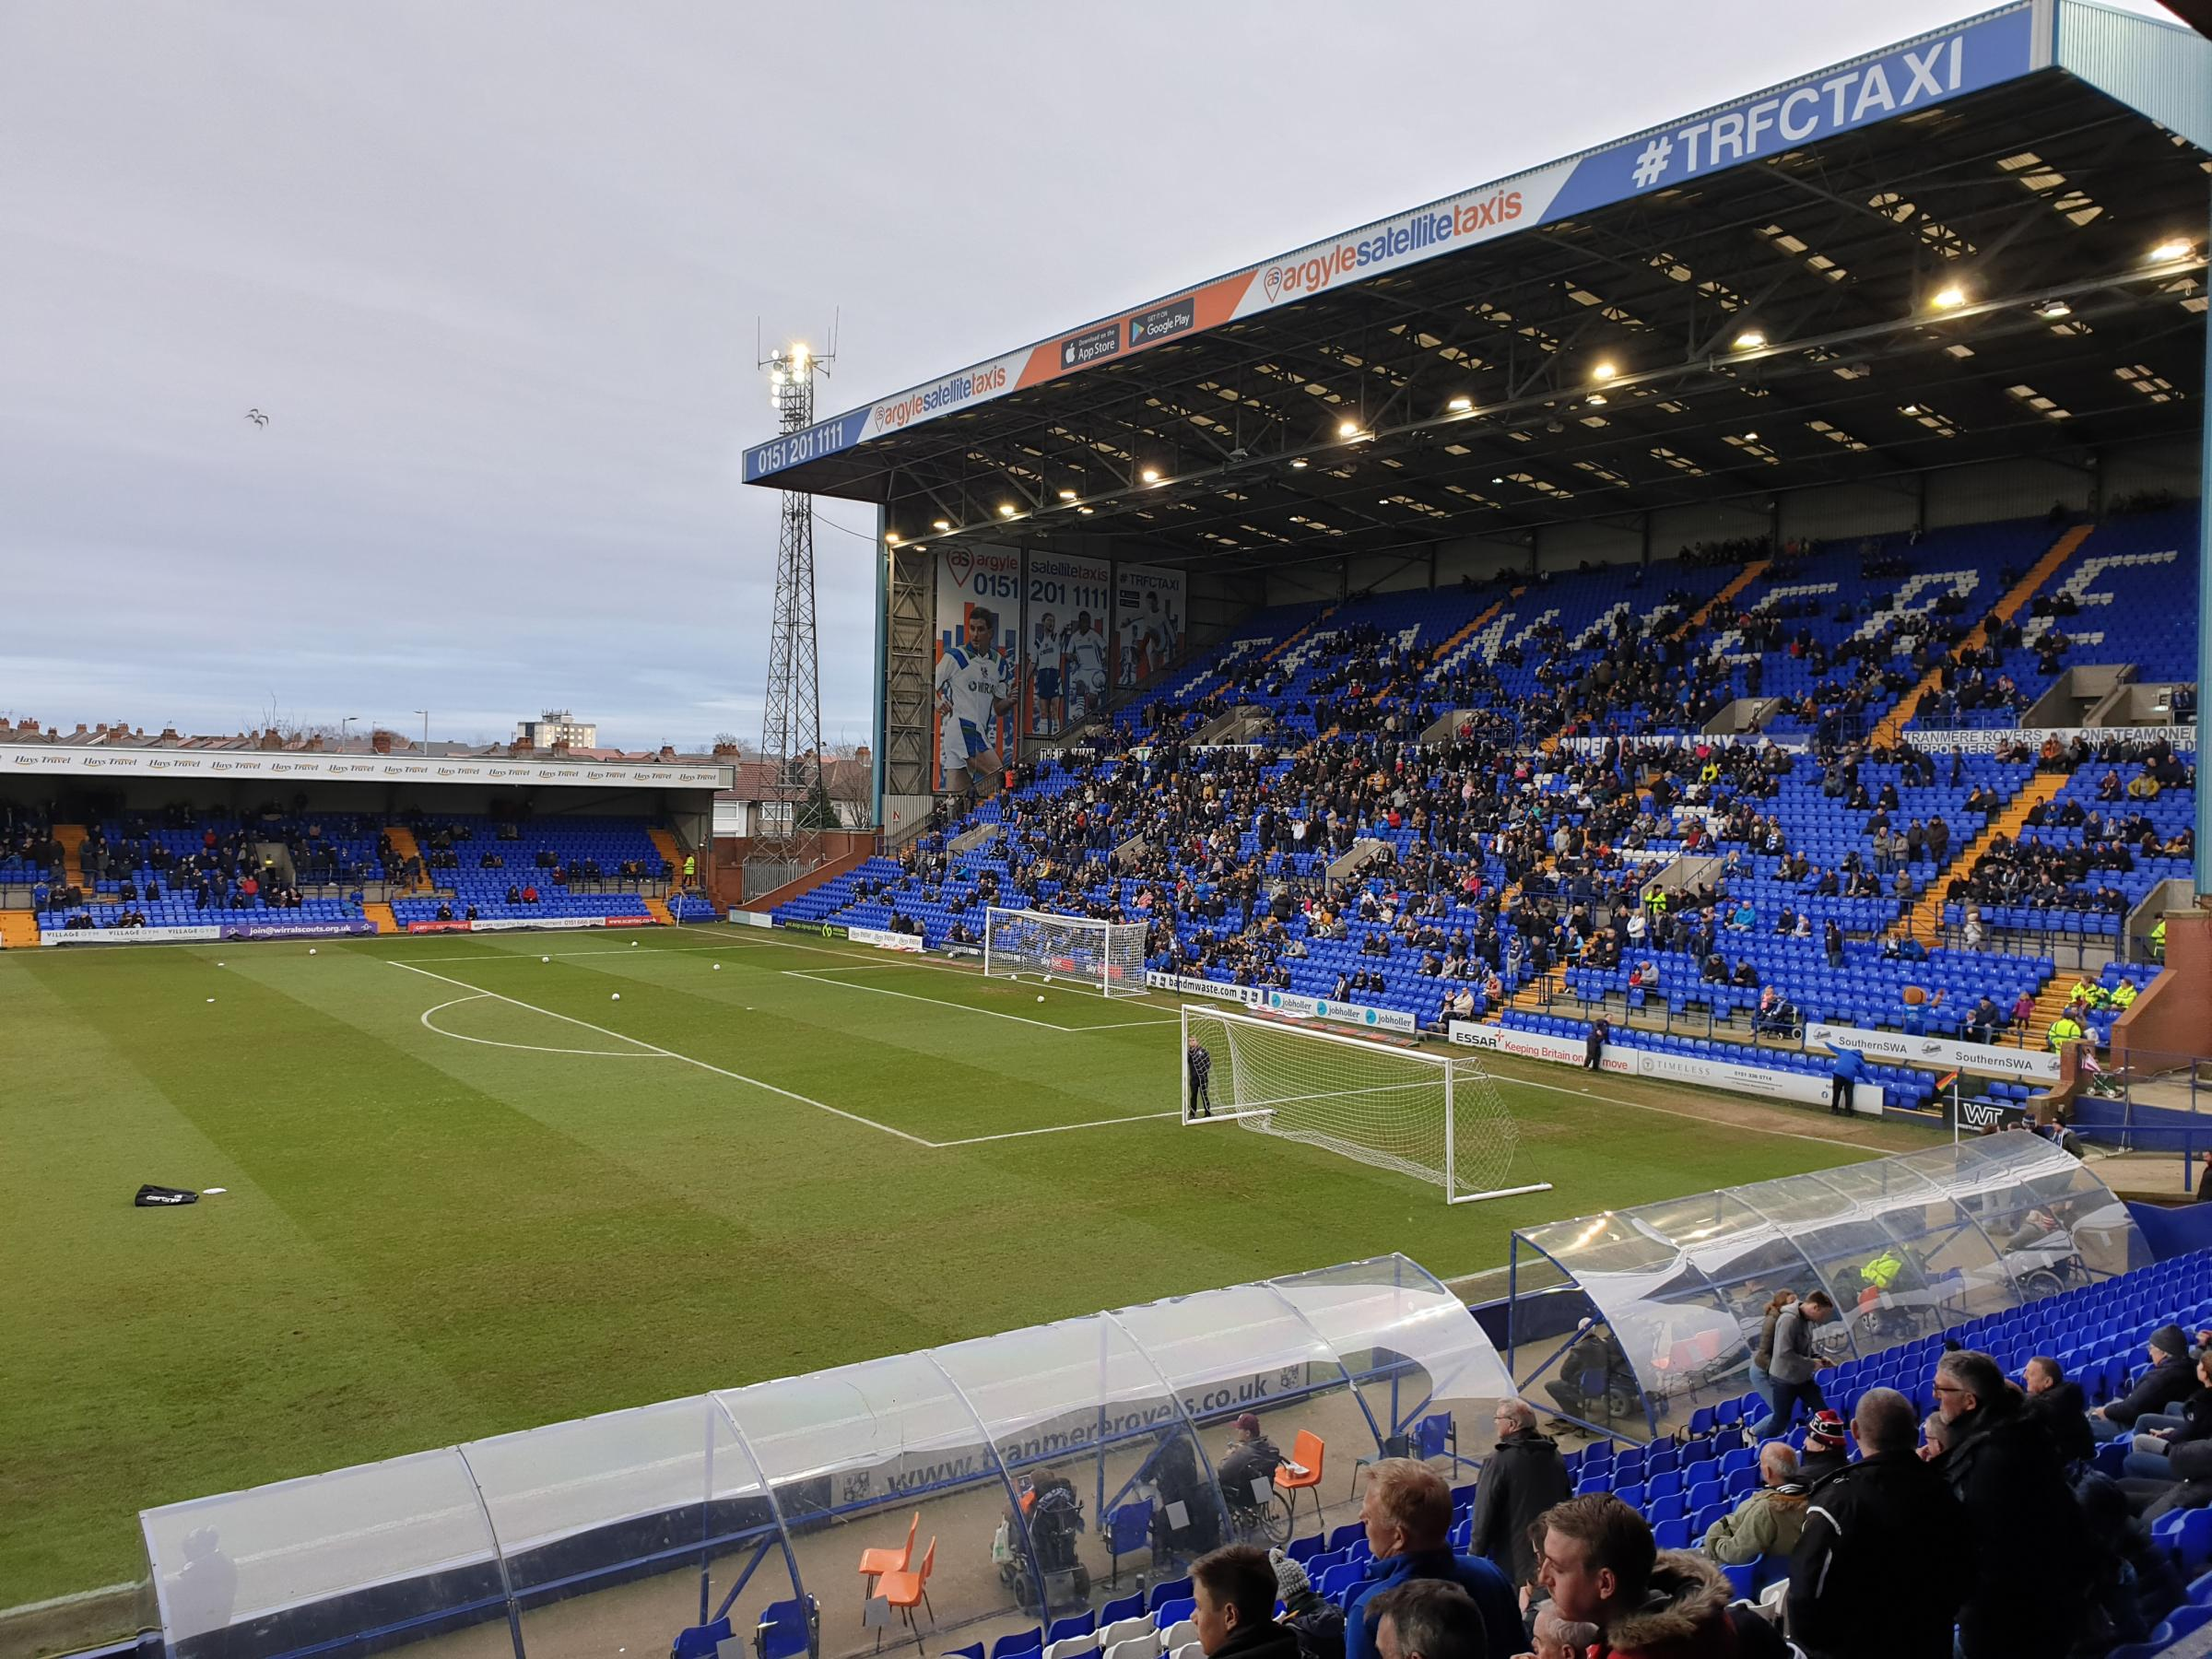 Tranmere Rovers 1-1 Accrington Stanley - Match report